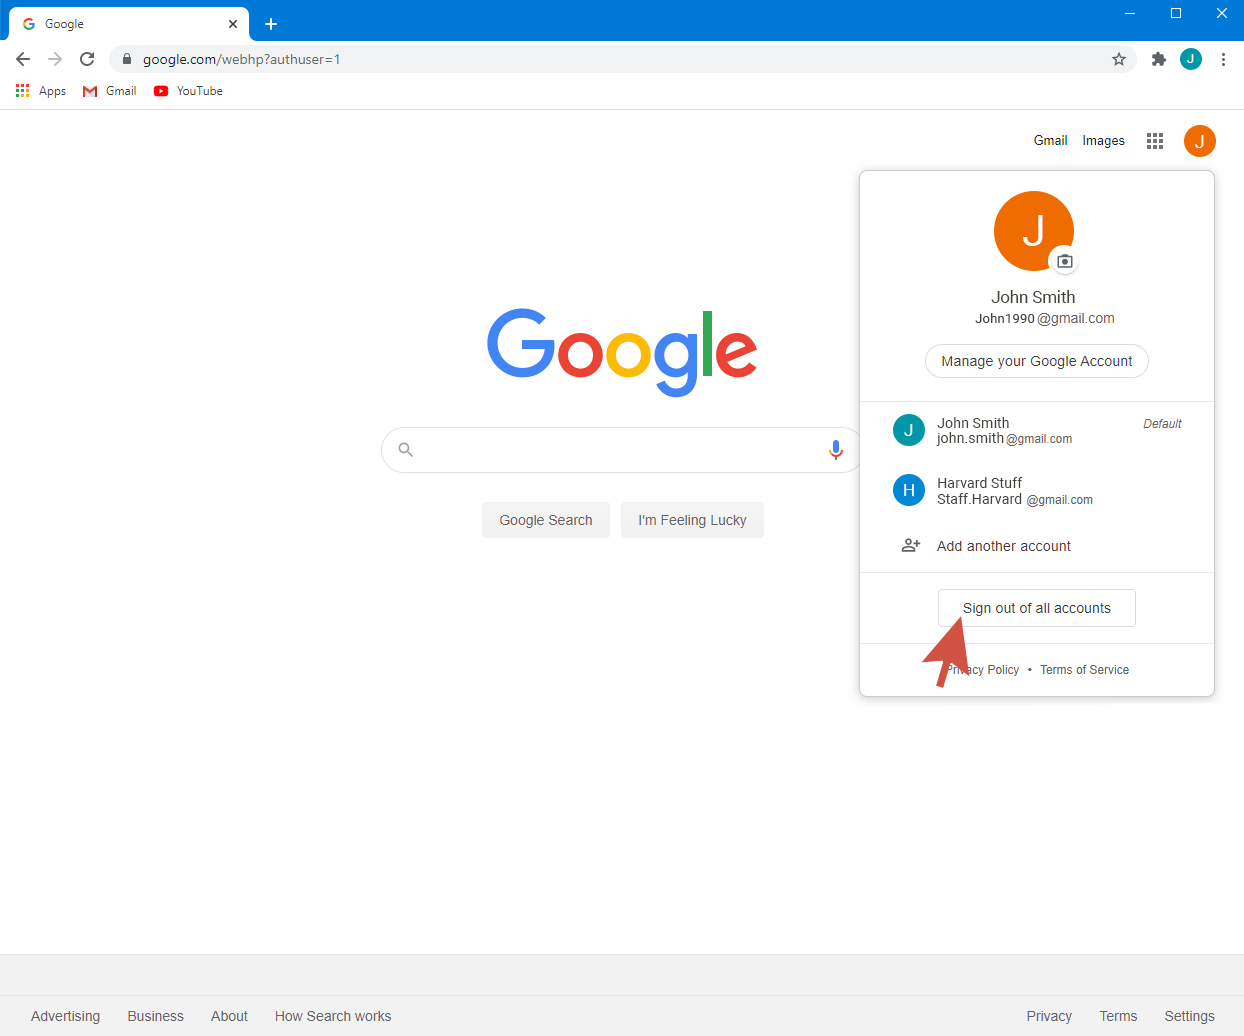 The next step to change default google account is signing out from all accounts